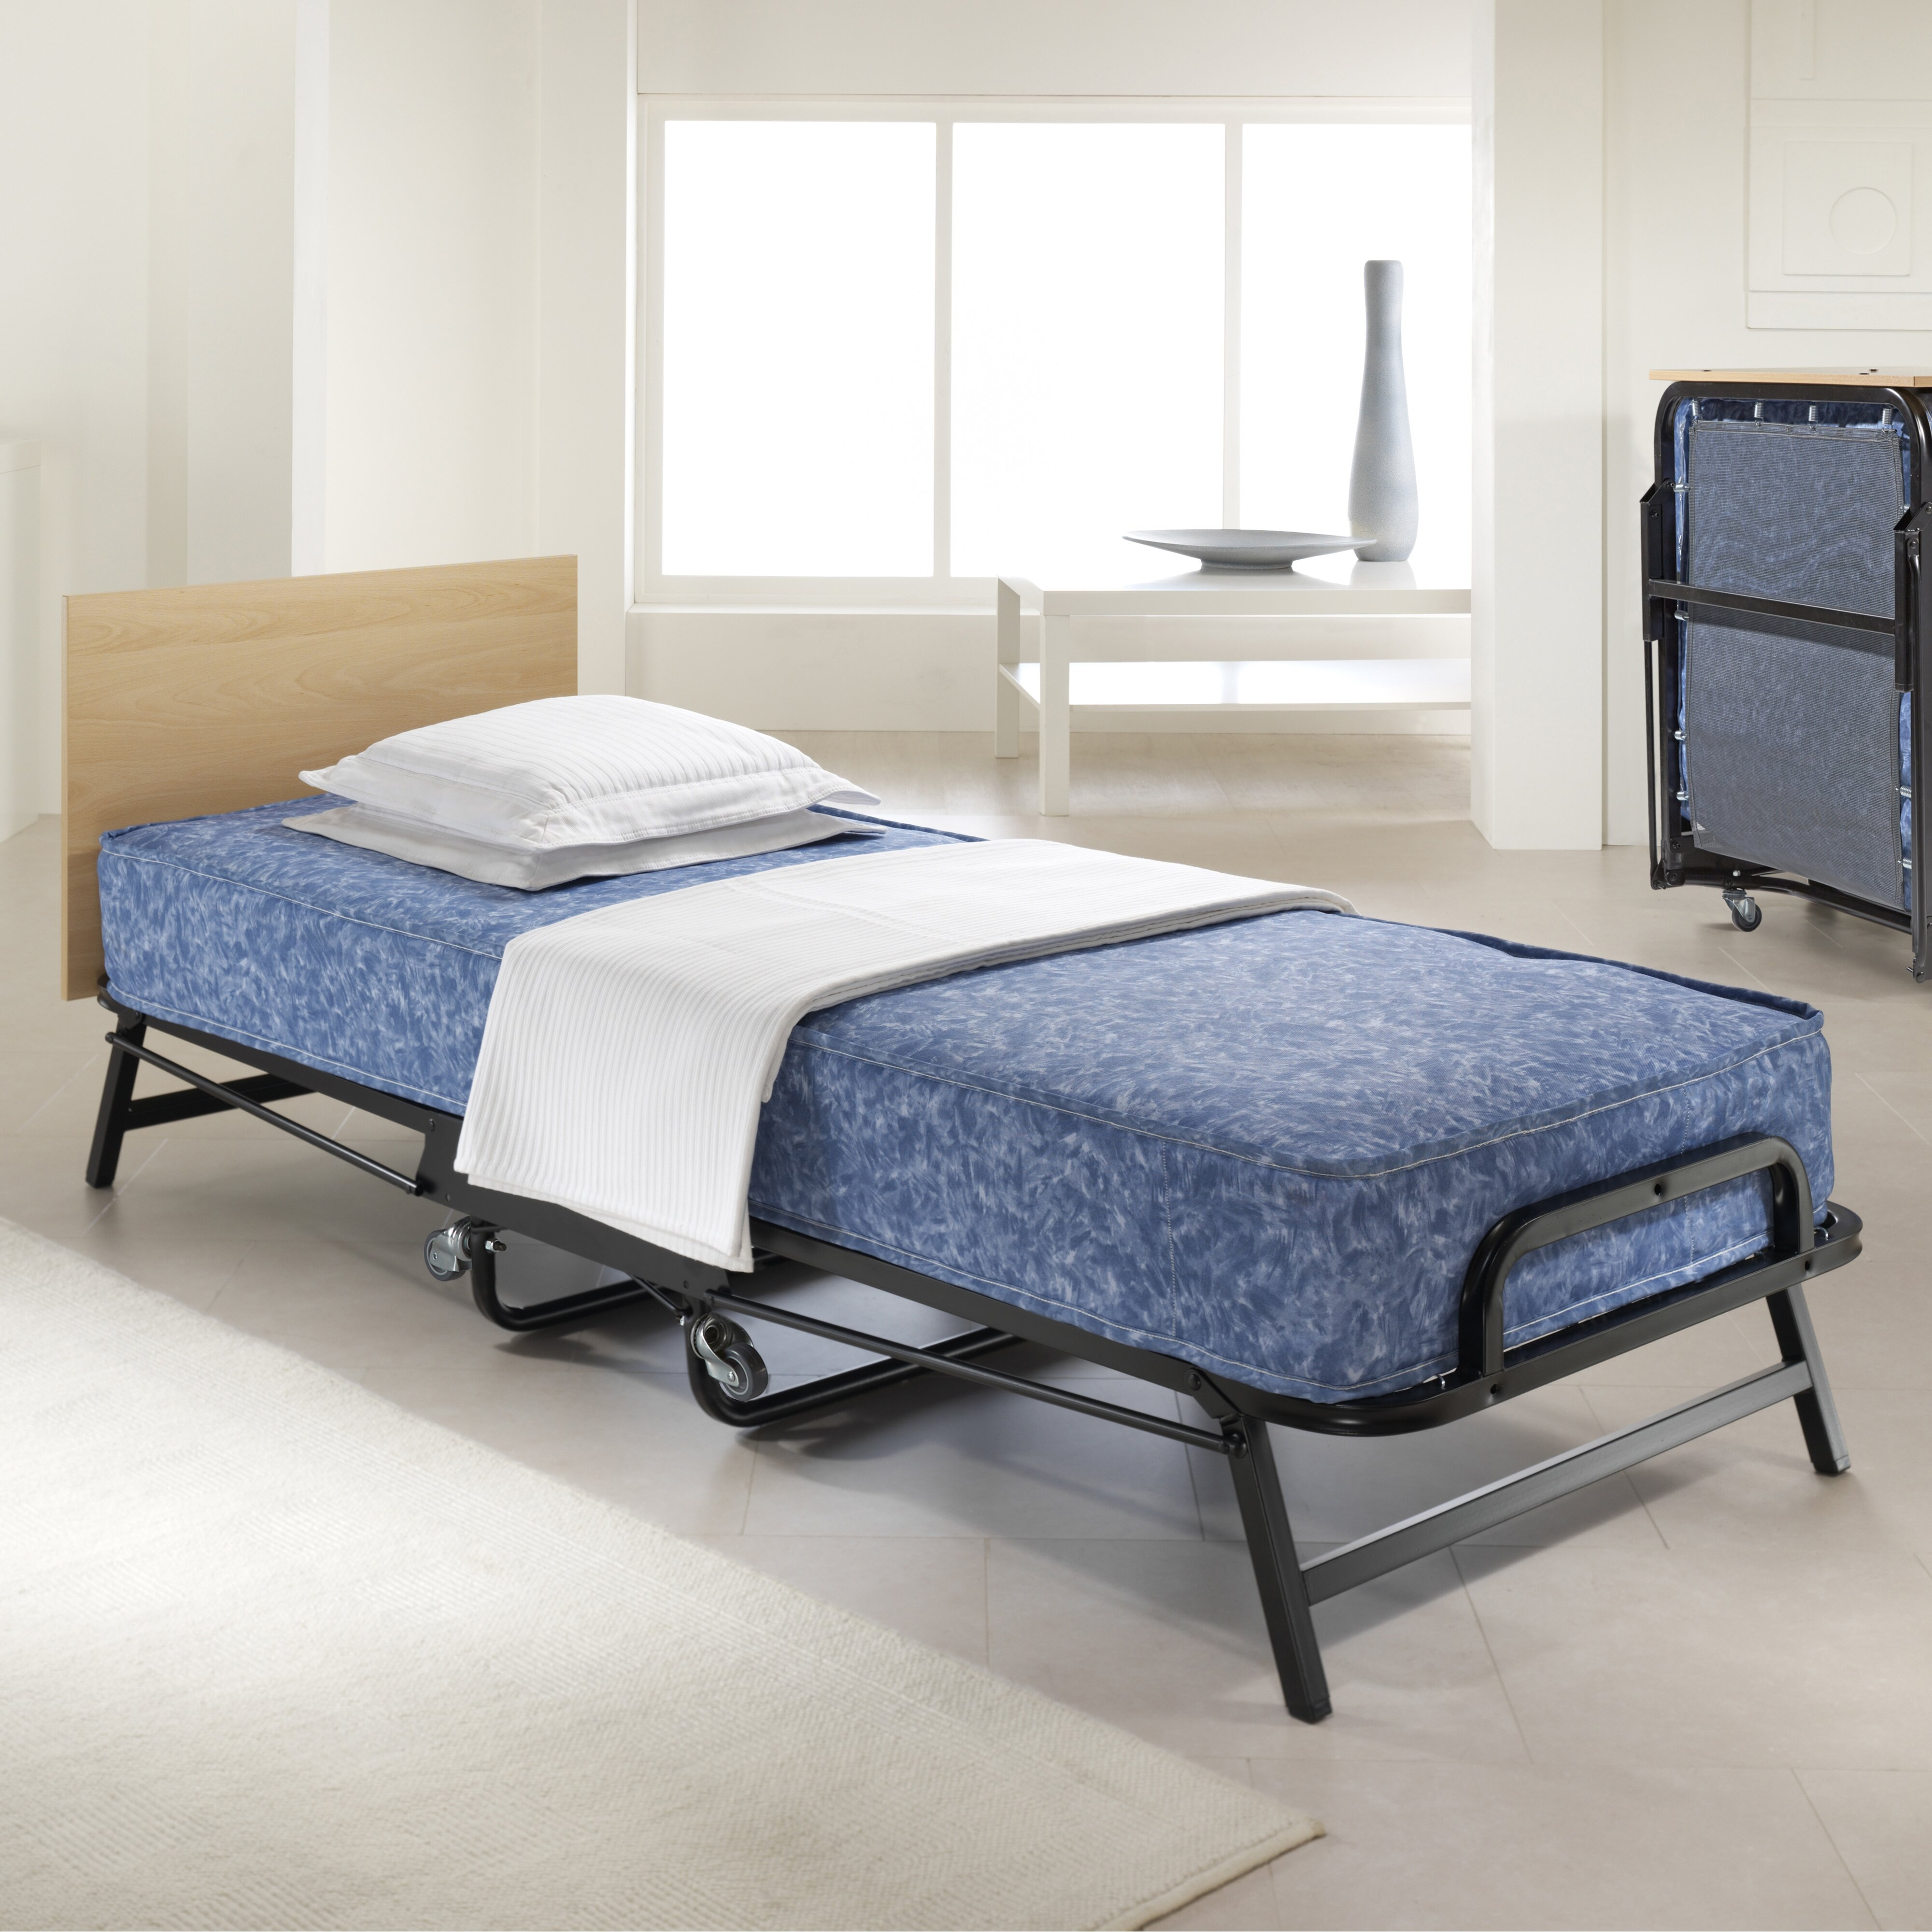 Folding Beds Reviews : Jay be crown windermere folding bed reviews wayfair uk